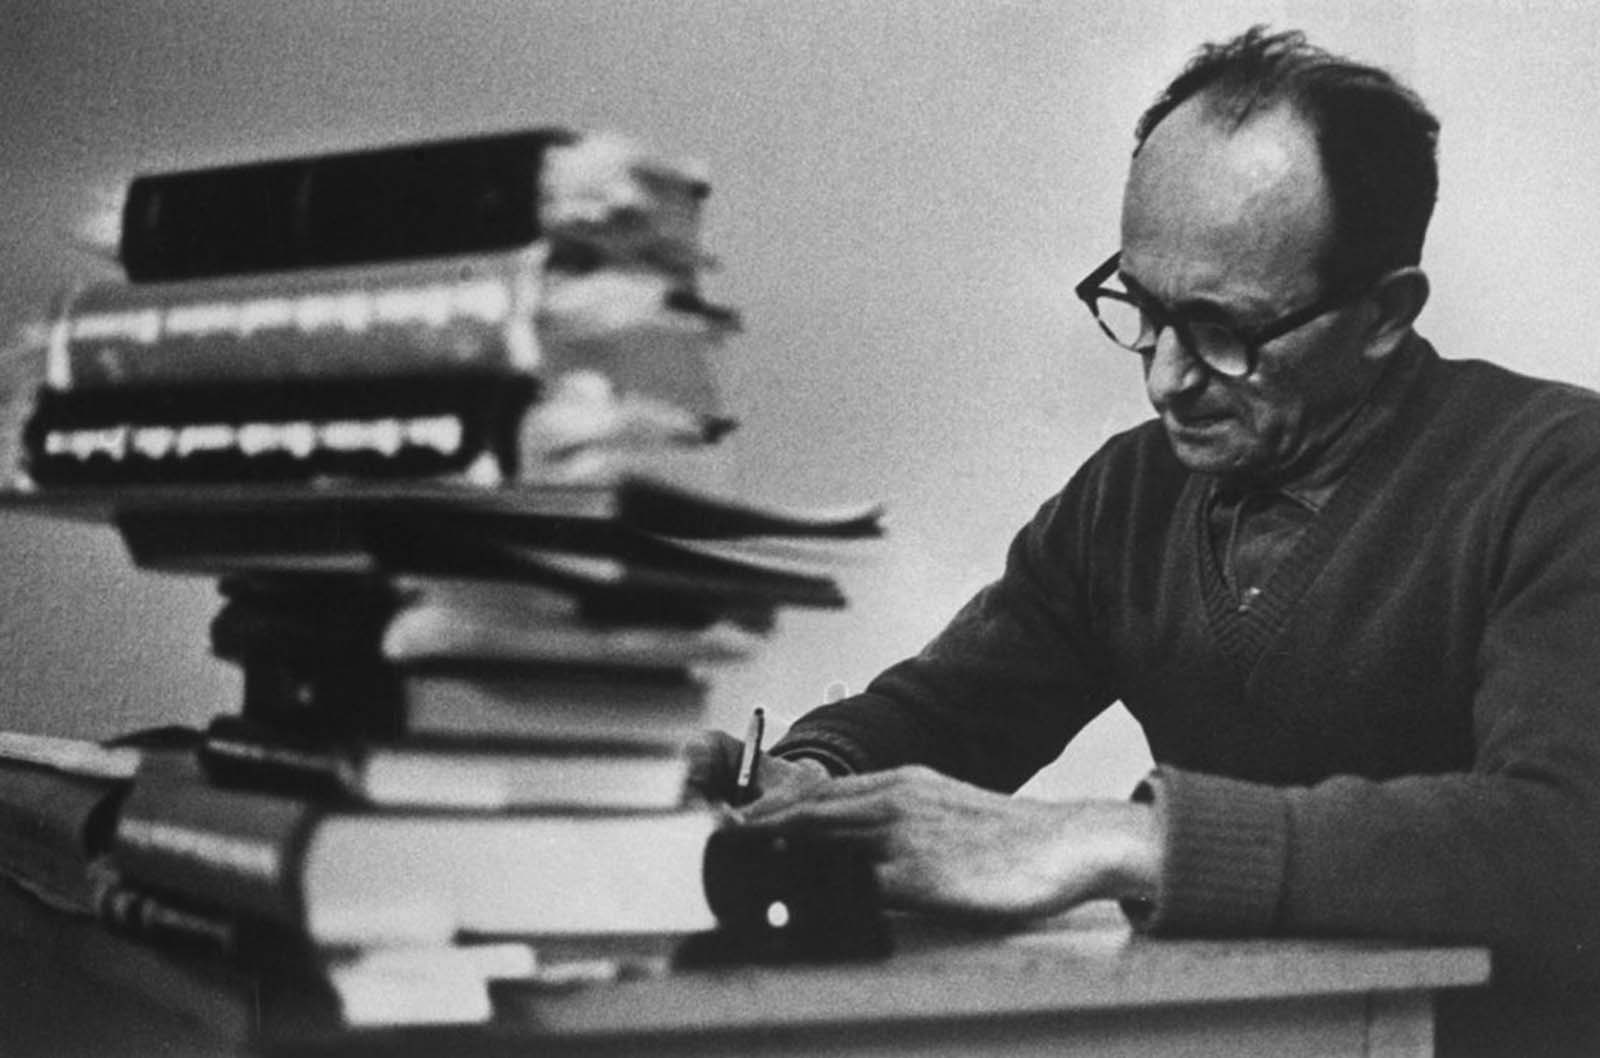 Reading and writing were both permitted, and Eichmann concentrated on books about Nazi regime.